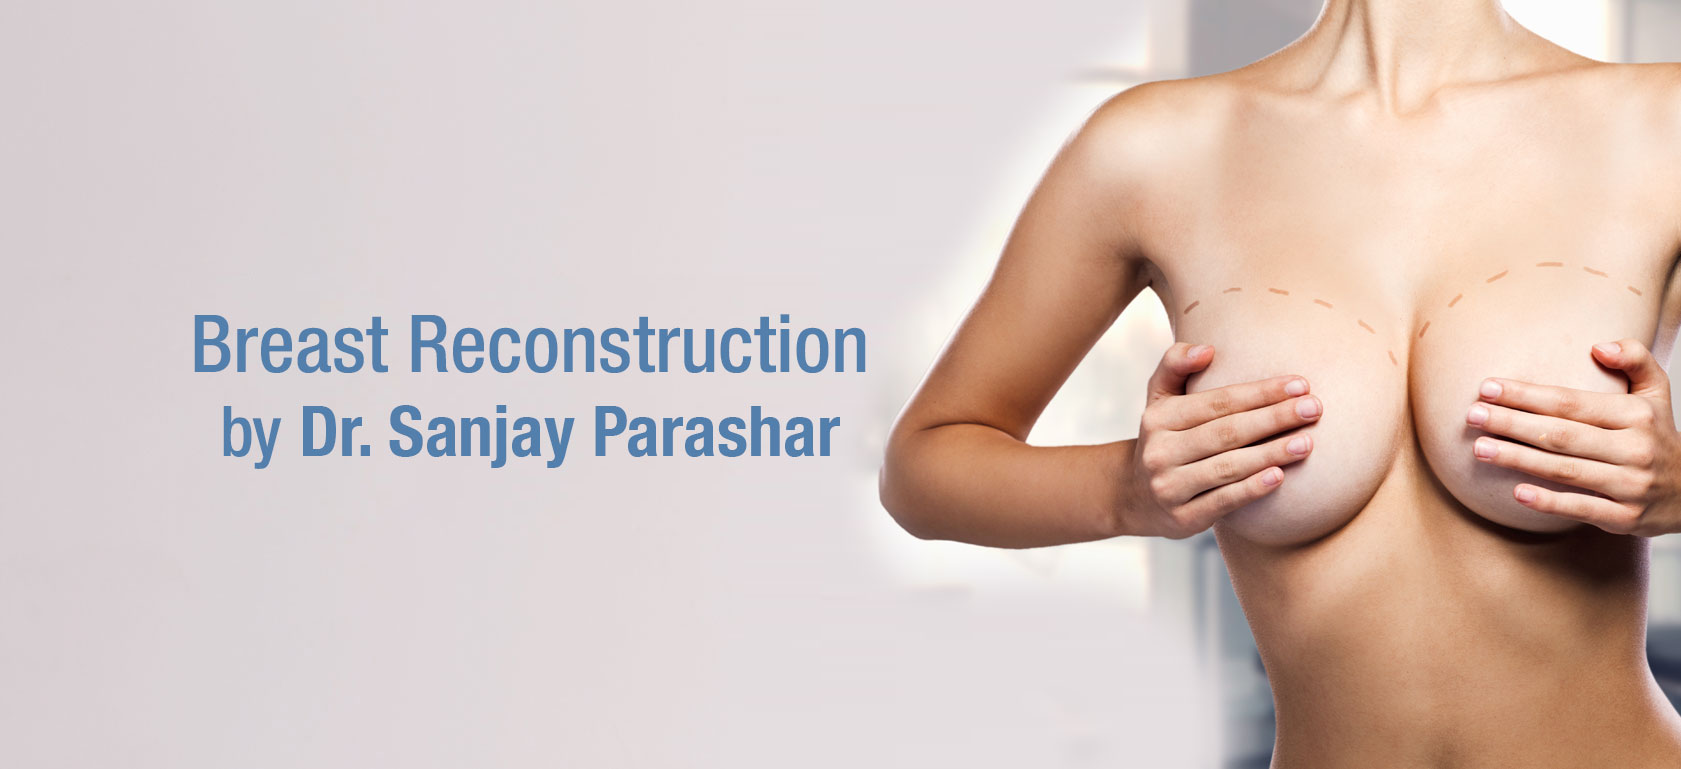 Breast Reconstruction Dubai - By Dr Sanjay Parashar